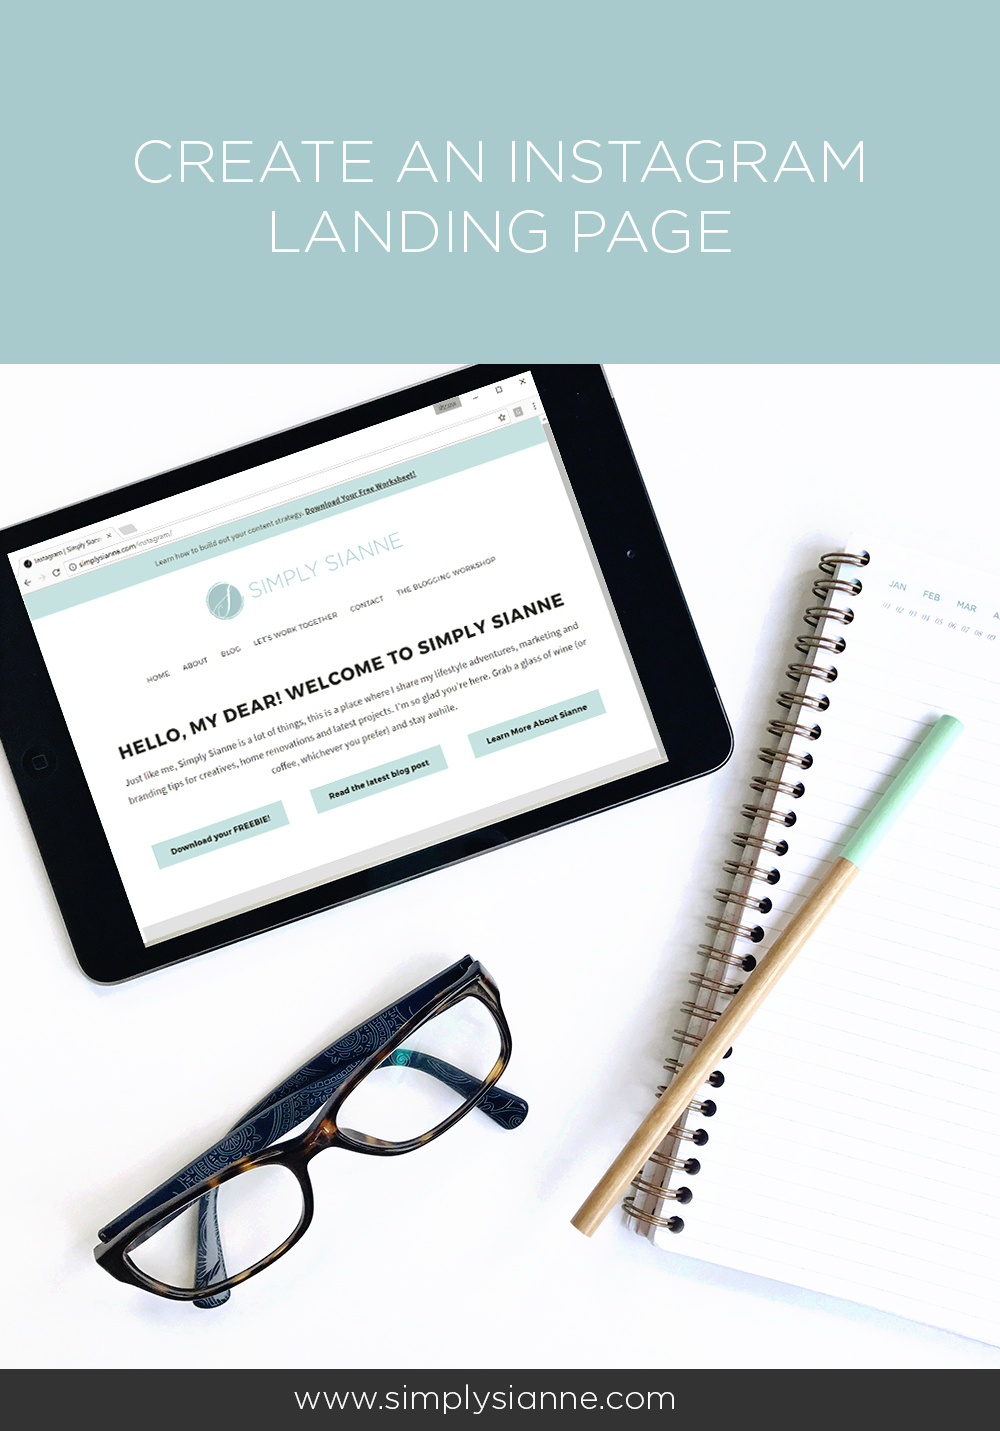 Create an instagram landing page for your creative business